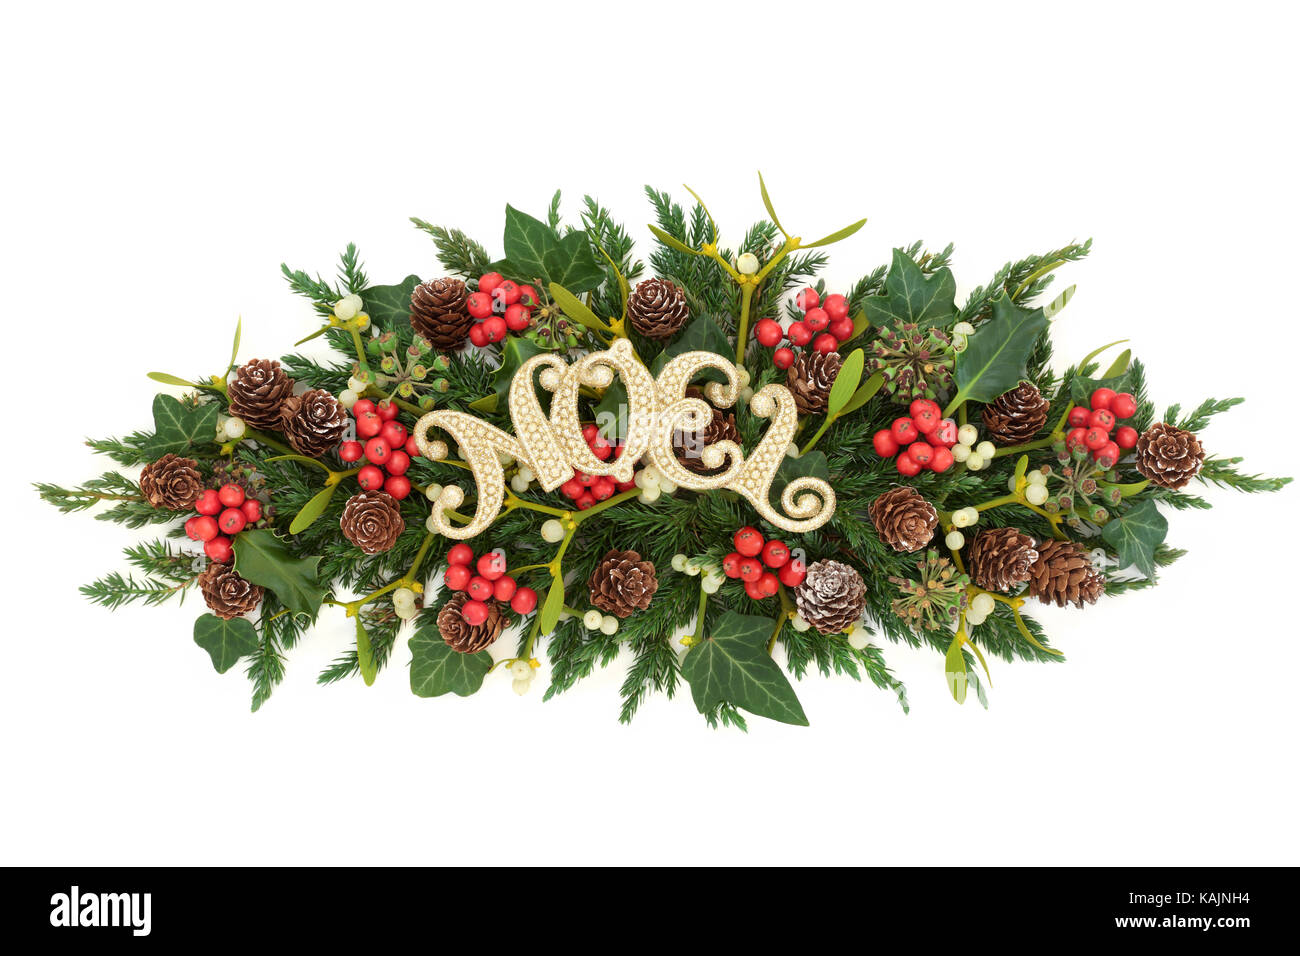 christmas decoration with gold noel sign holly ivy mistletoe fir and pine cones on white background - Mistletoe Christmas Decoration